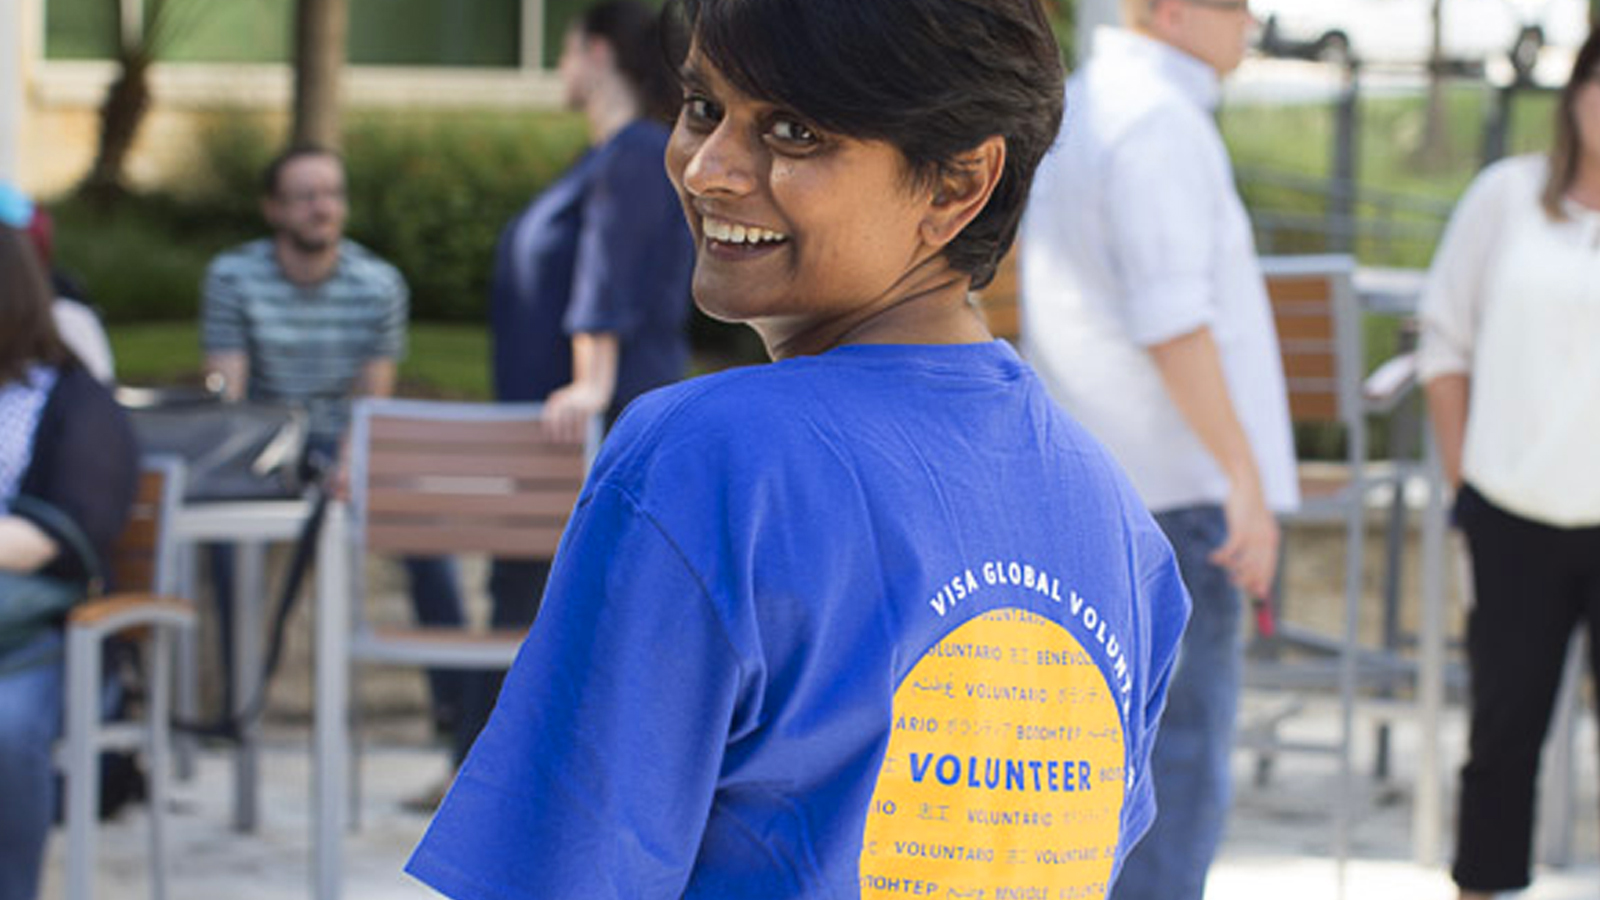 Visa volunteer smiling at camera with her back faced towards it.